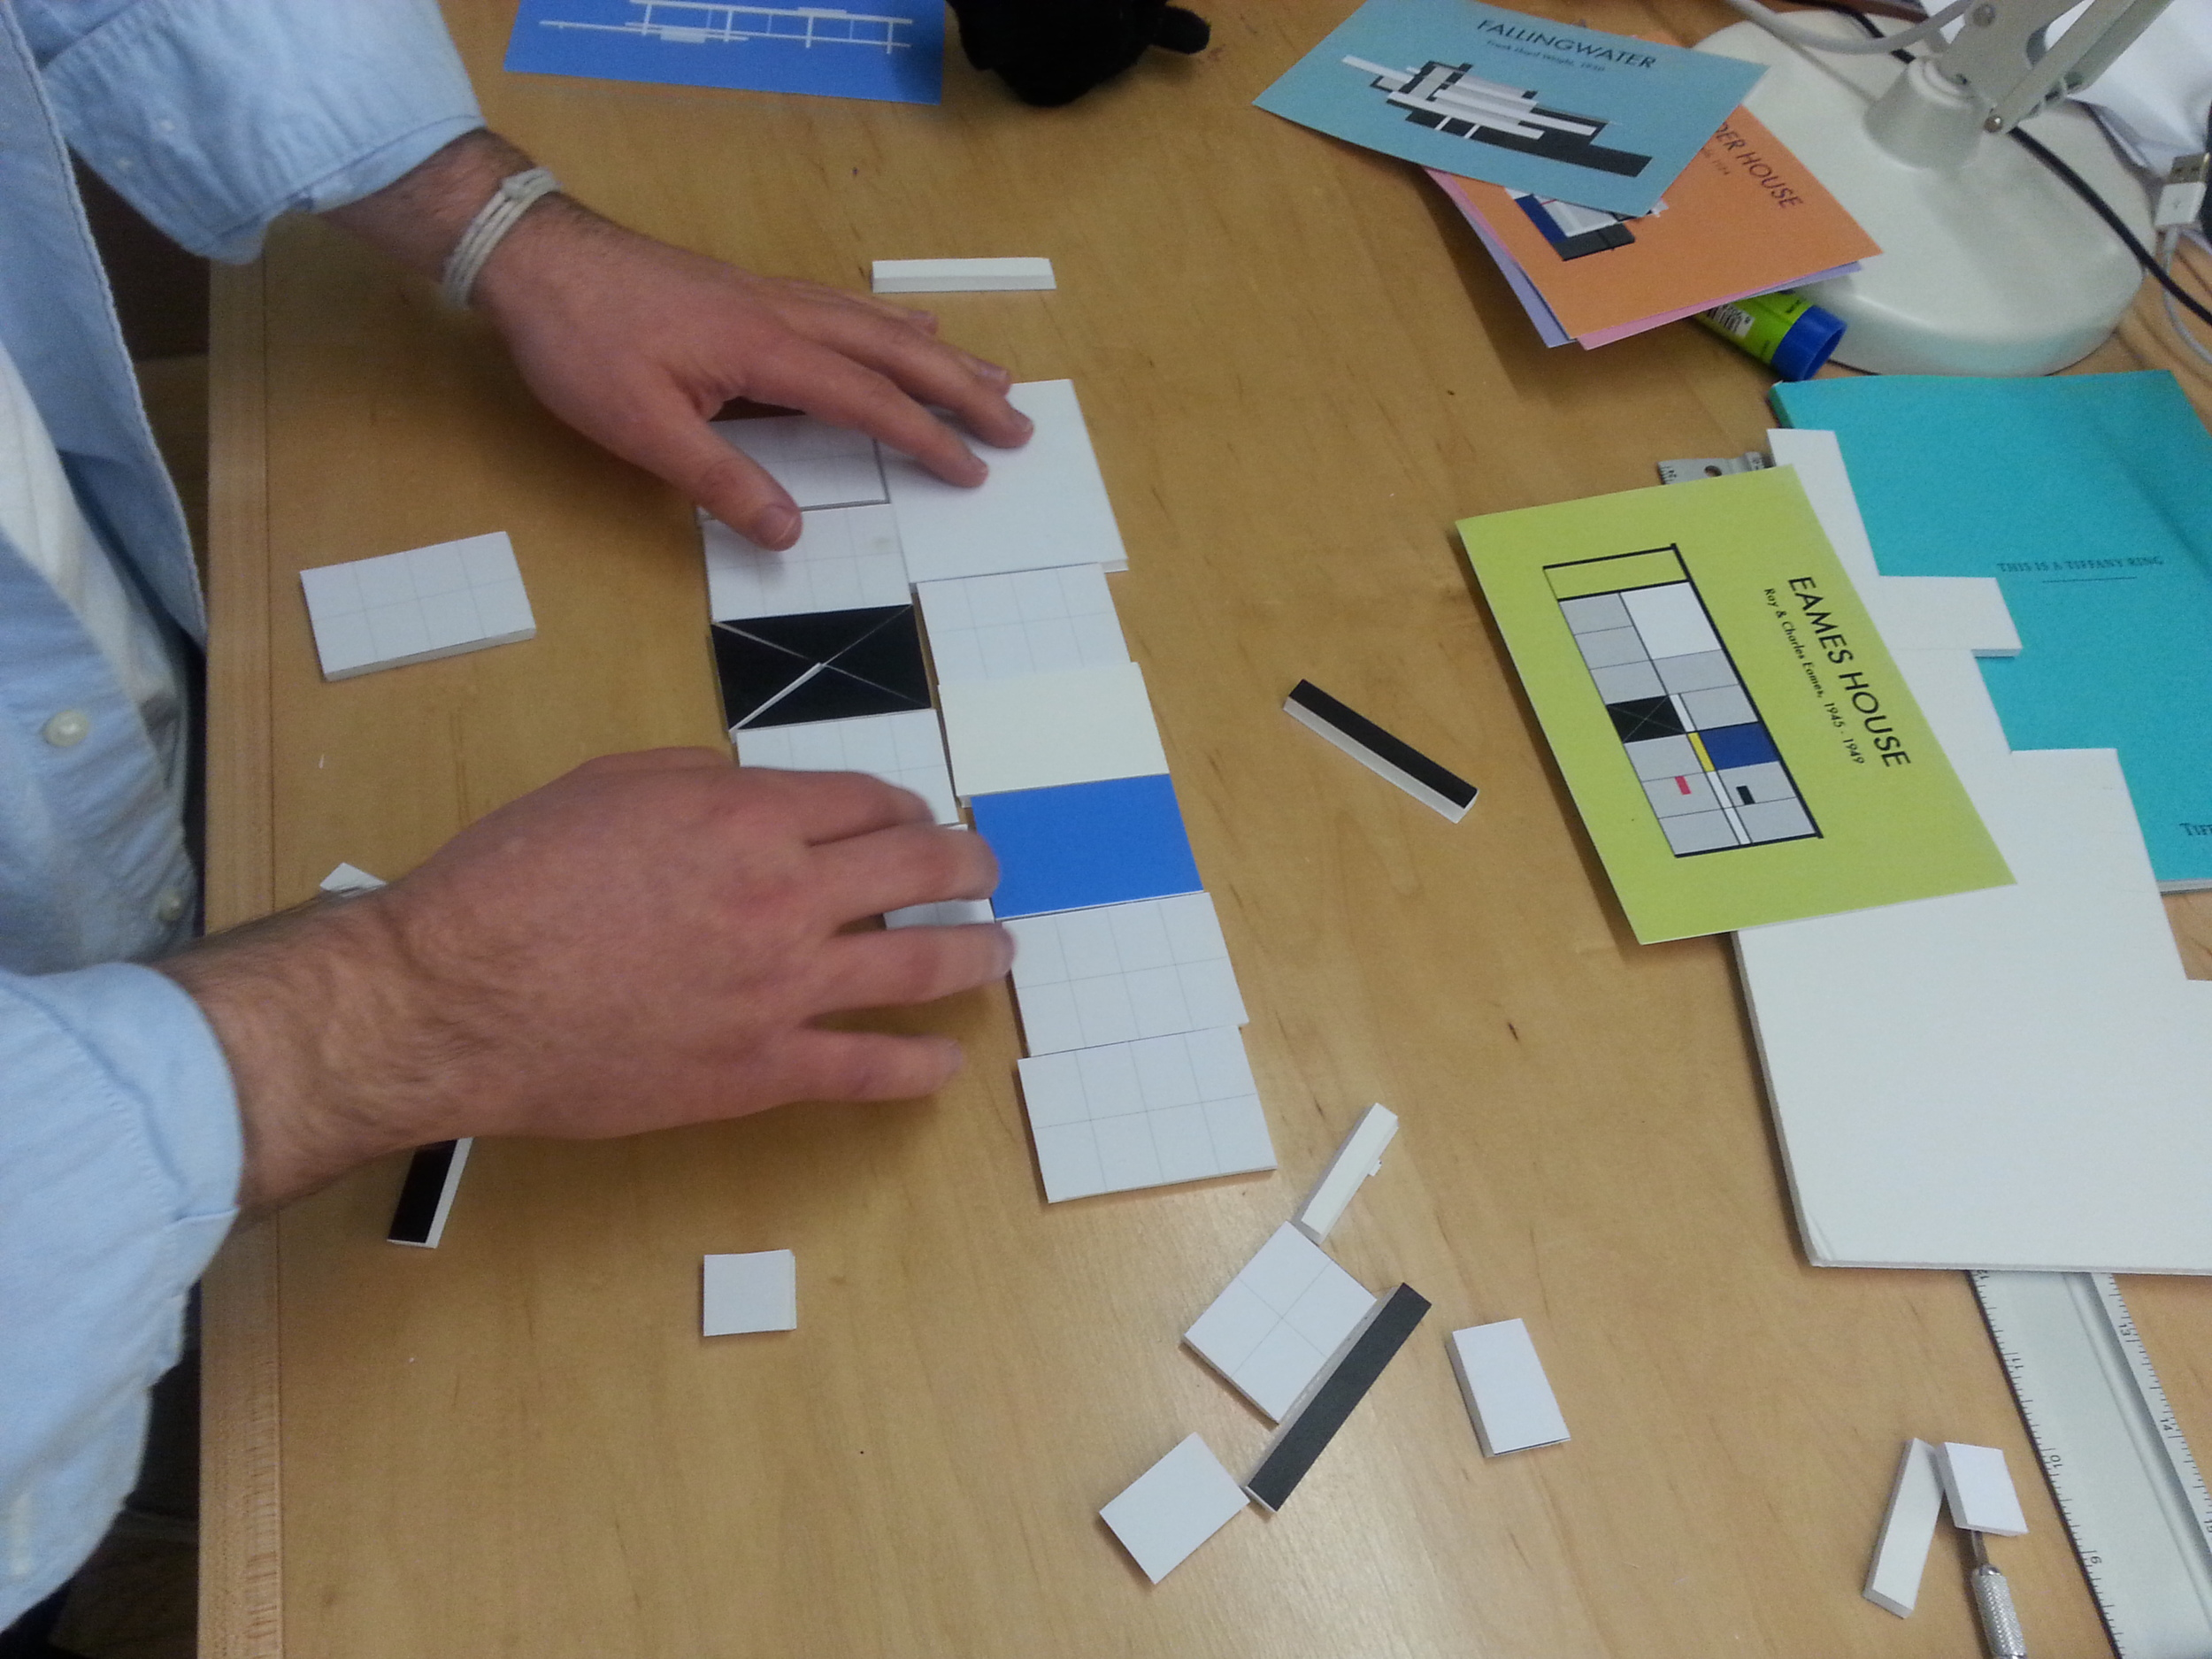 Prototype 2: foam core tangram pieces that assemble to form the buildings illustrated in the flashcard.